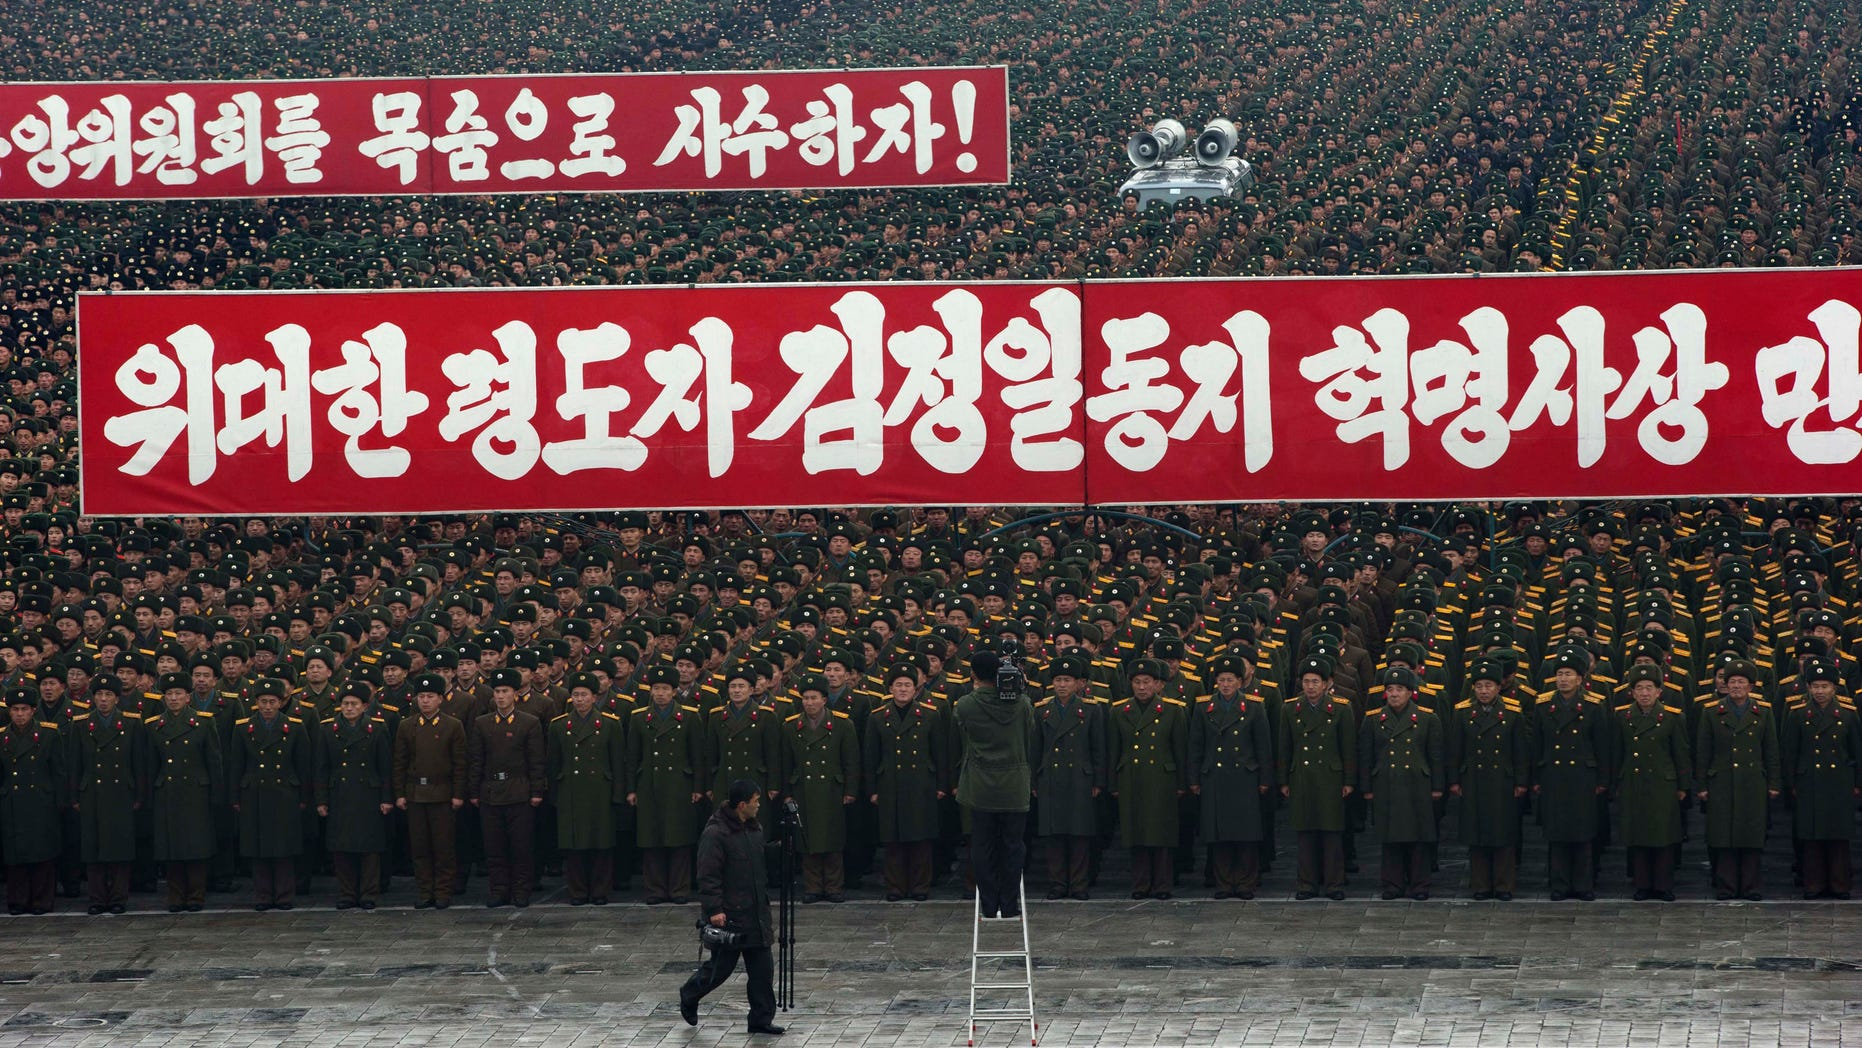 Dec. 14, 2012 - Slogans honoring the leadership during a mass rally organized to celebrate the success of a rocket launch that sent a satellite into space on Kim Il Sung Square in Pyongyang, North Korea.